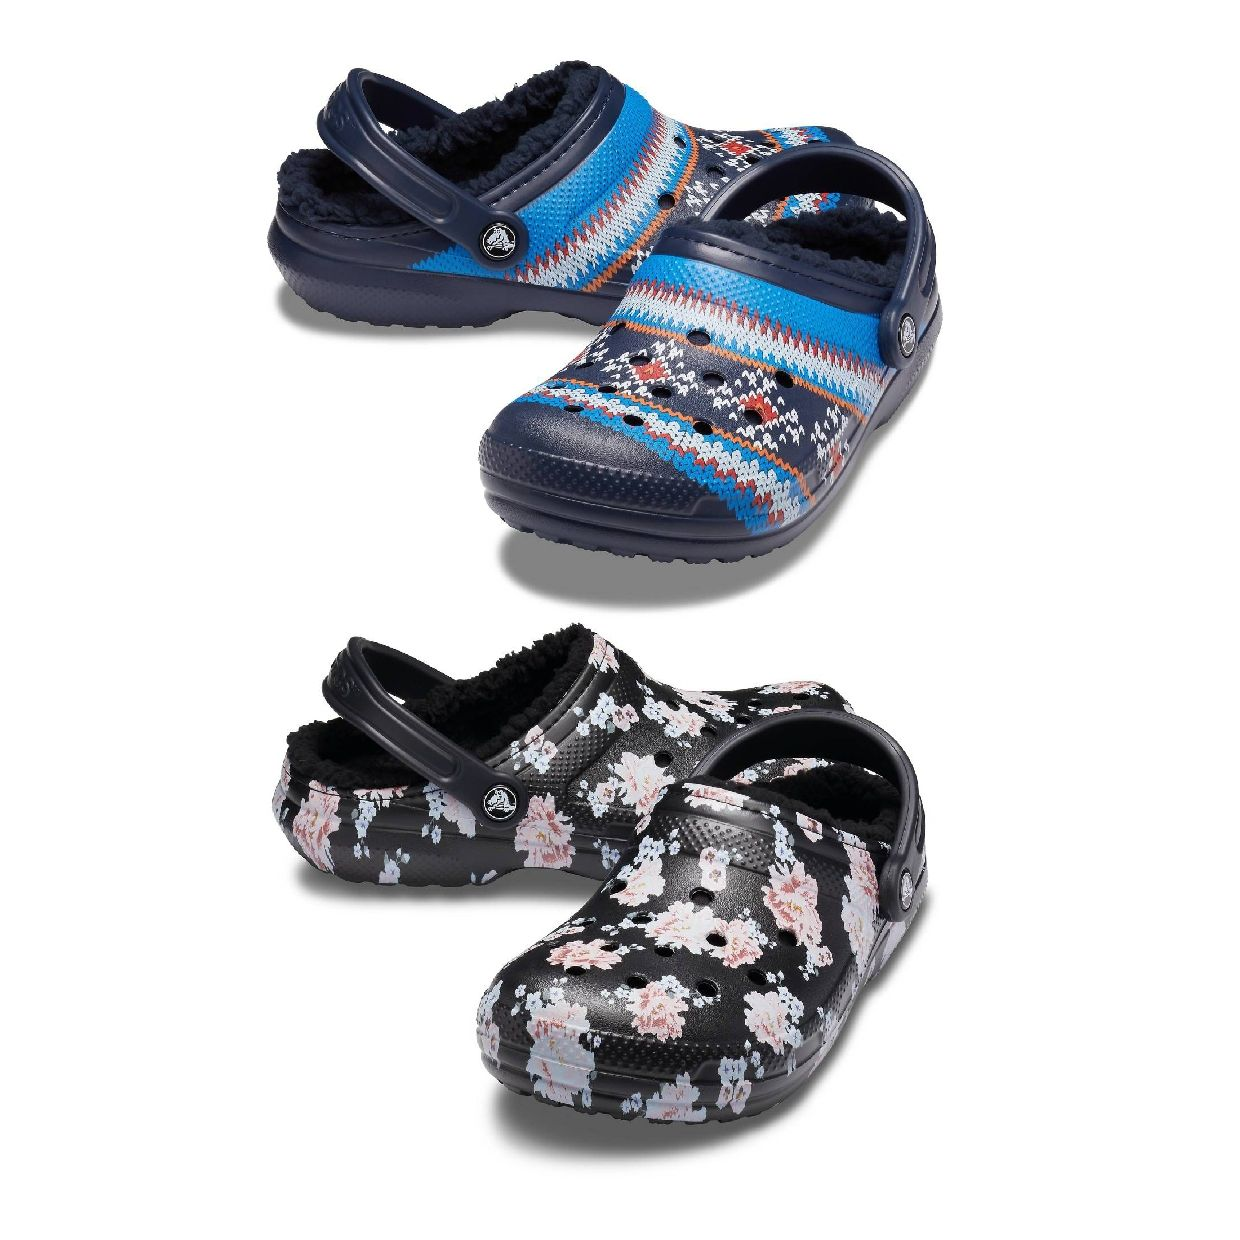 Crocs Classic Printed Lined Clog Clogs Gefütterte Synthetik Unisex HW19